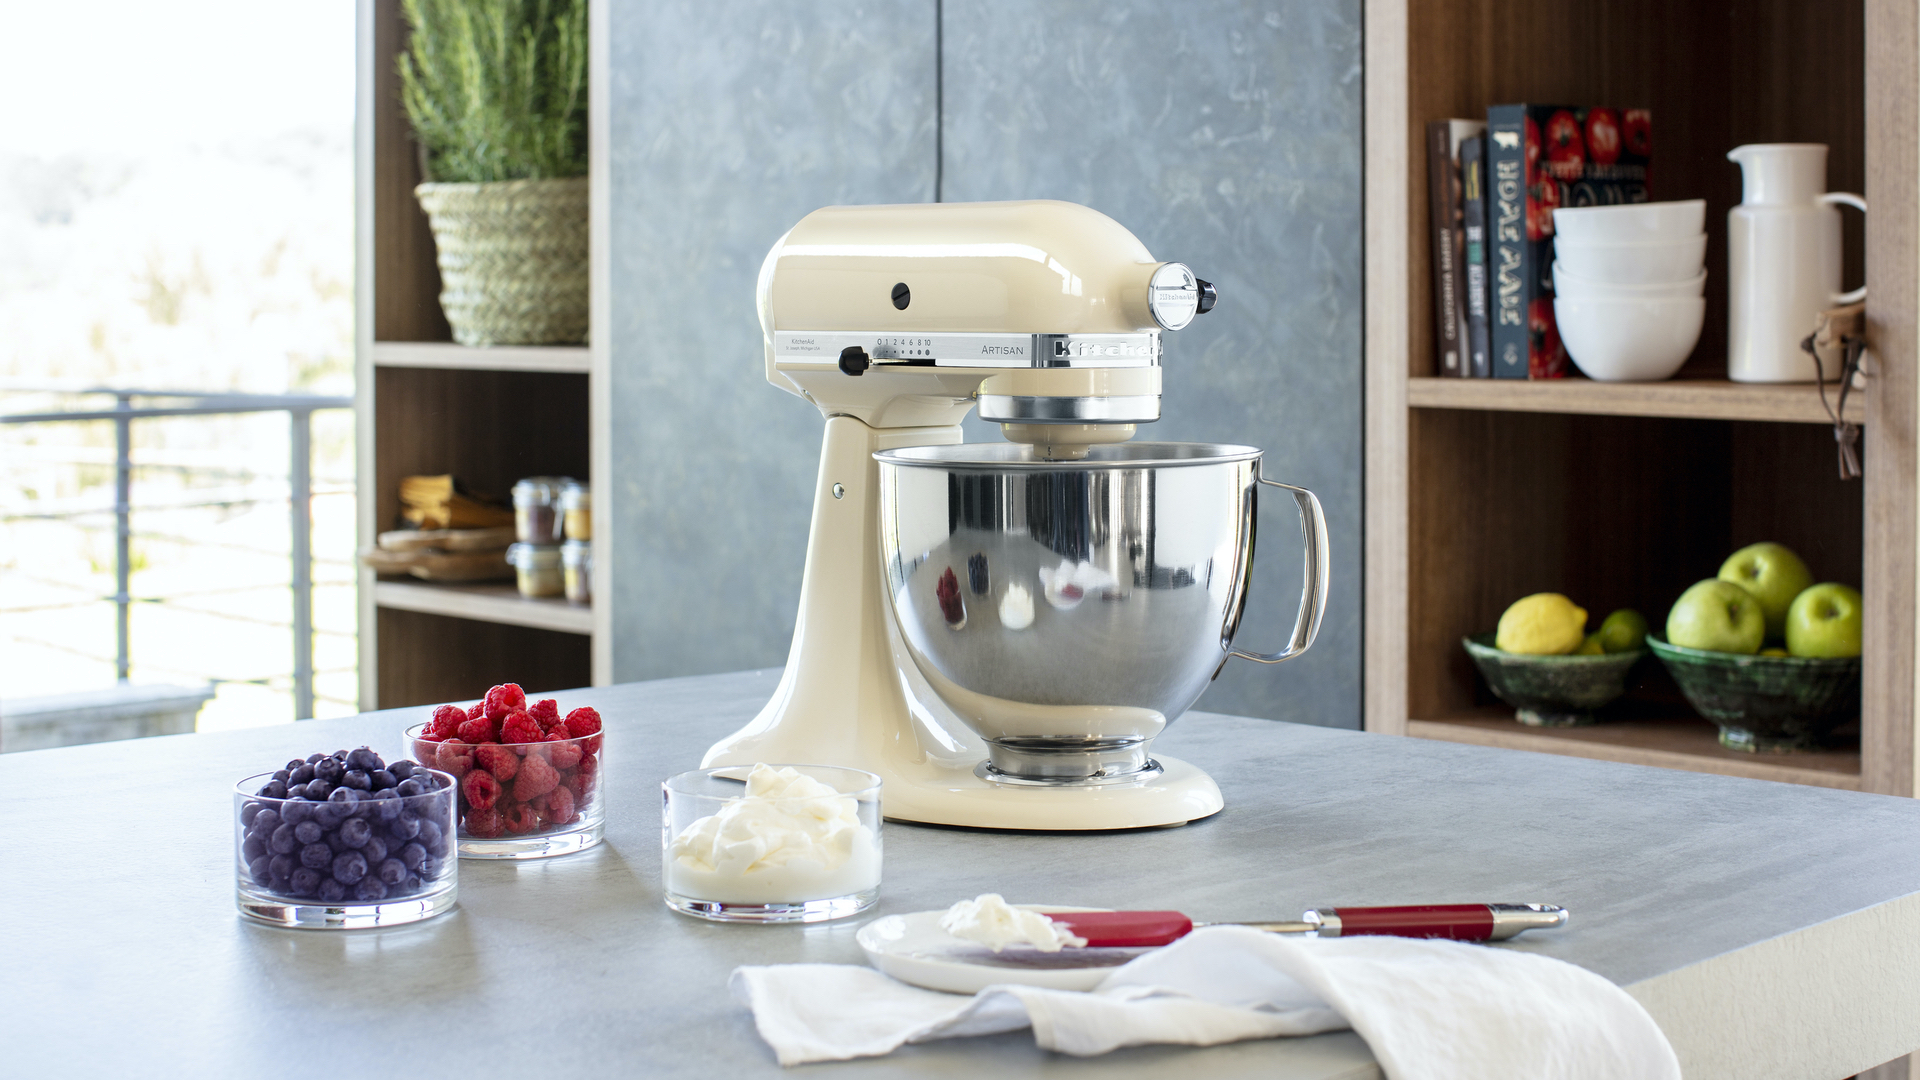 Best Kitchenaid Mixers 2021 Top Stand Mixers Blenders Choppers And Portables From The American Mix Maestro T3